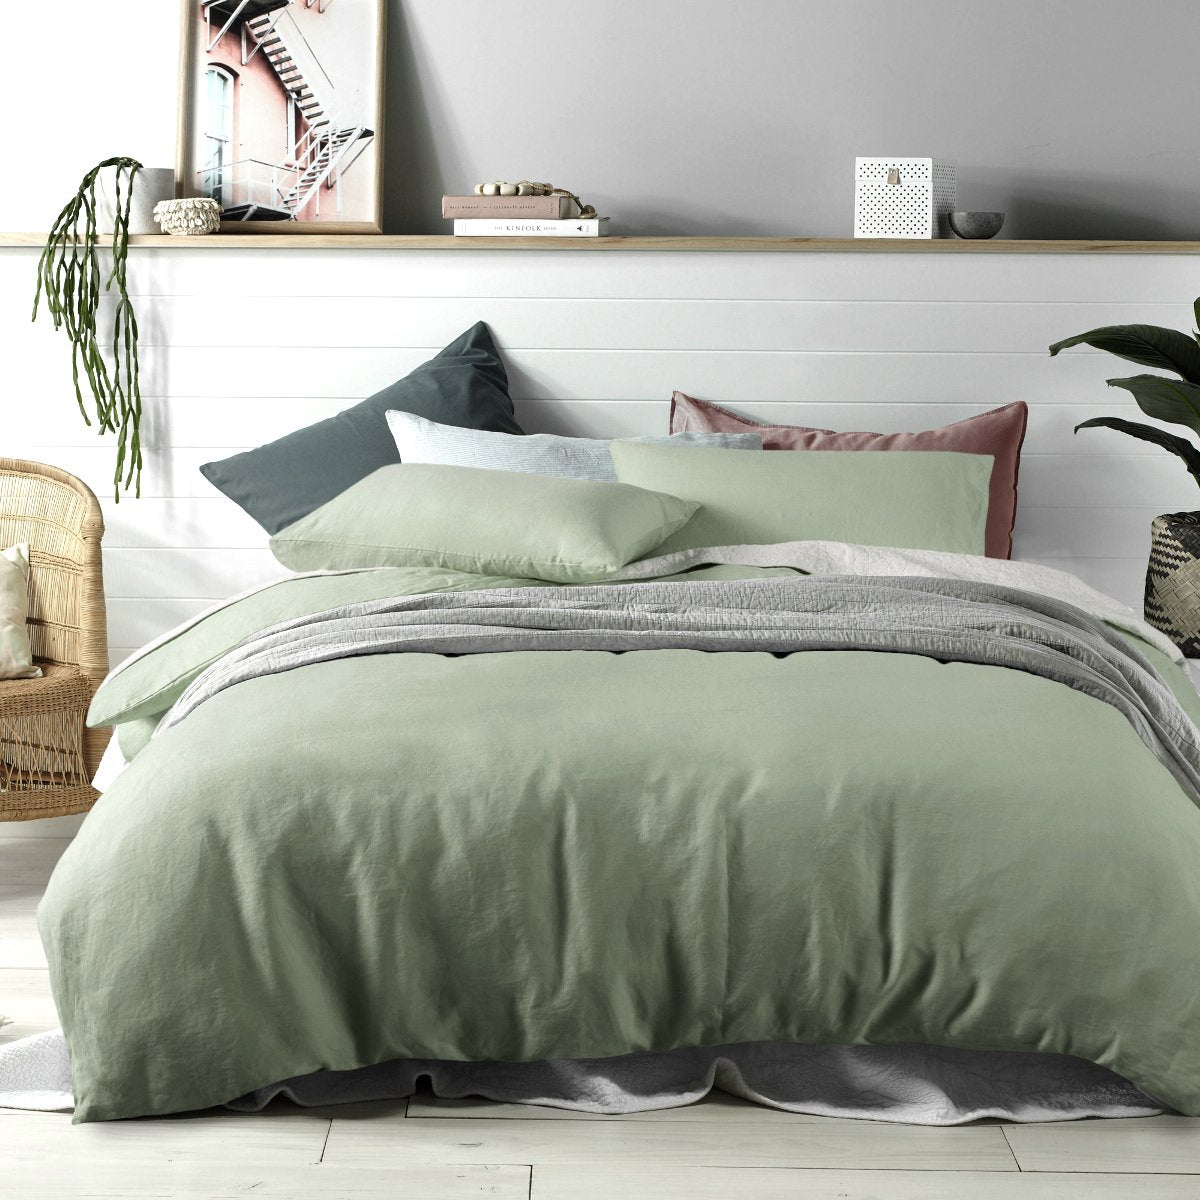 100% Linen sage green duvet cover set. Vinatge wash linen quilt cover set